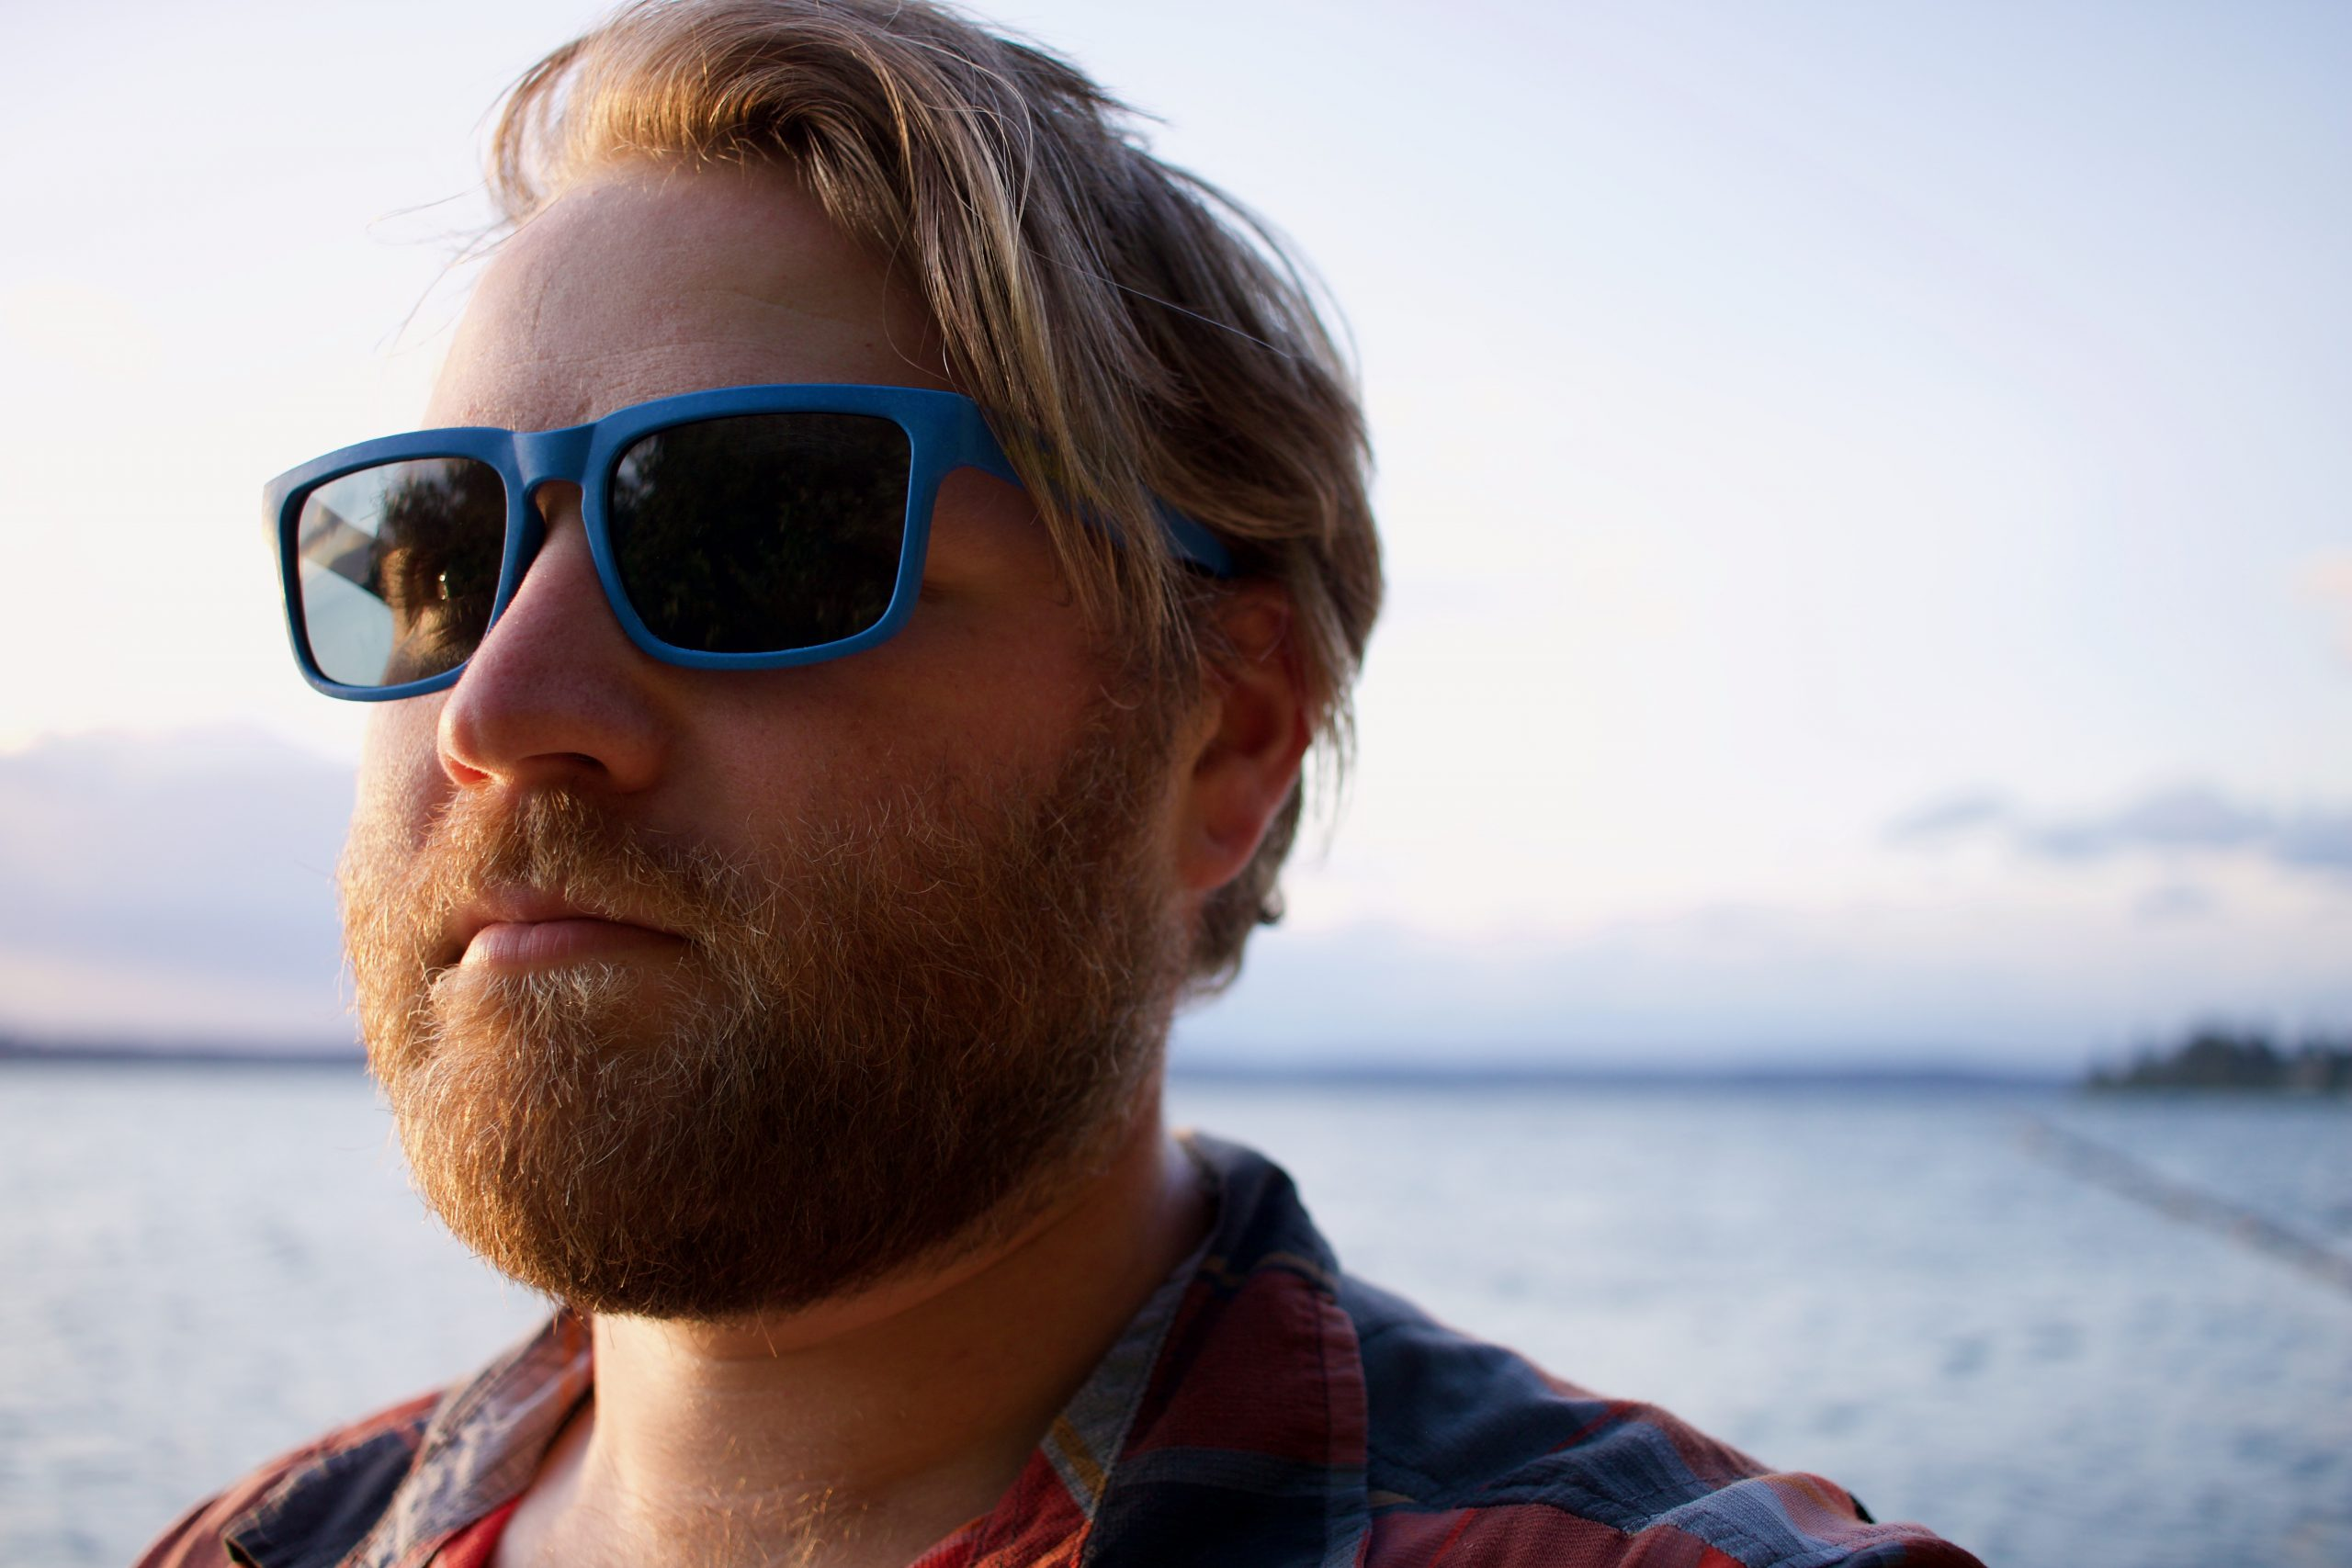 A man wearing the BioSunnies Freedoms near the water